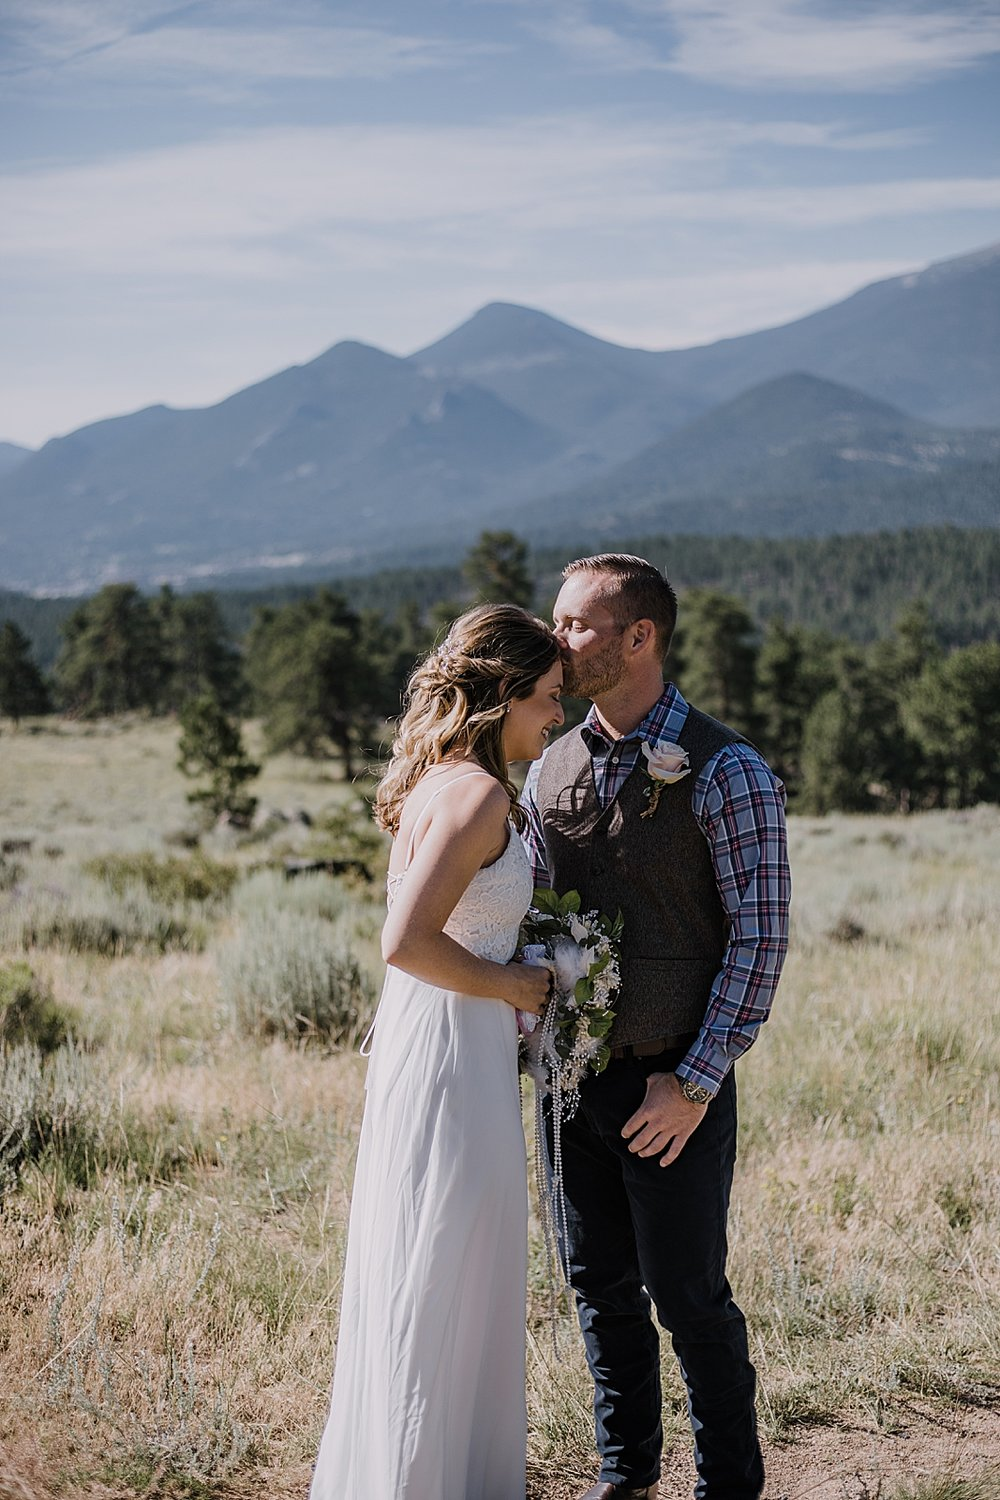 groom kissing bride, rocky mountain national park elopement, 3M curves elopement, self solemnizing, self solemnization, long's peak ceremony, hiking elopement, estes park elopement